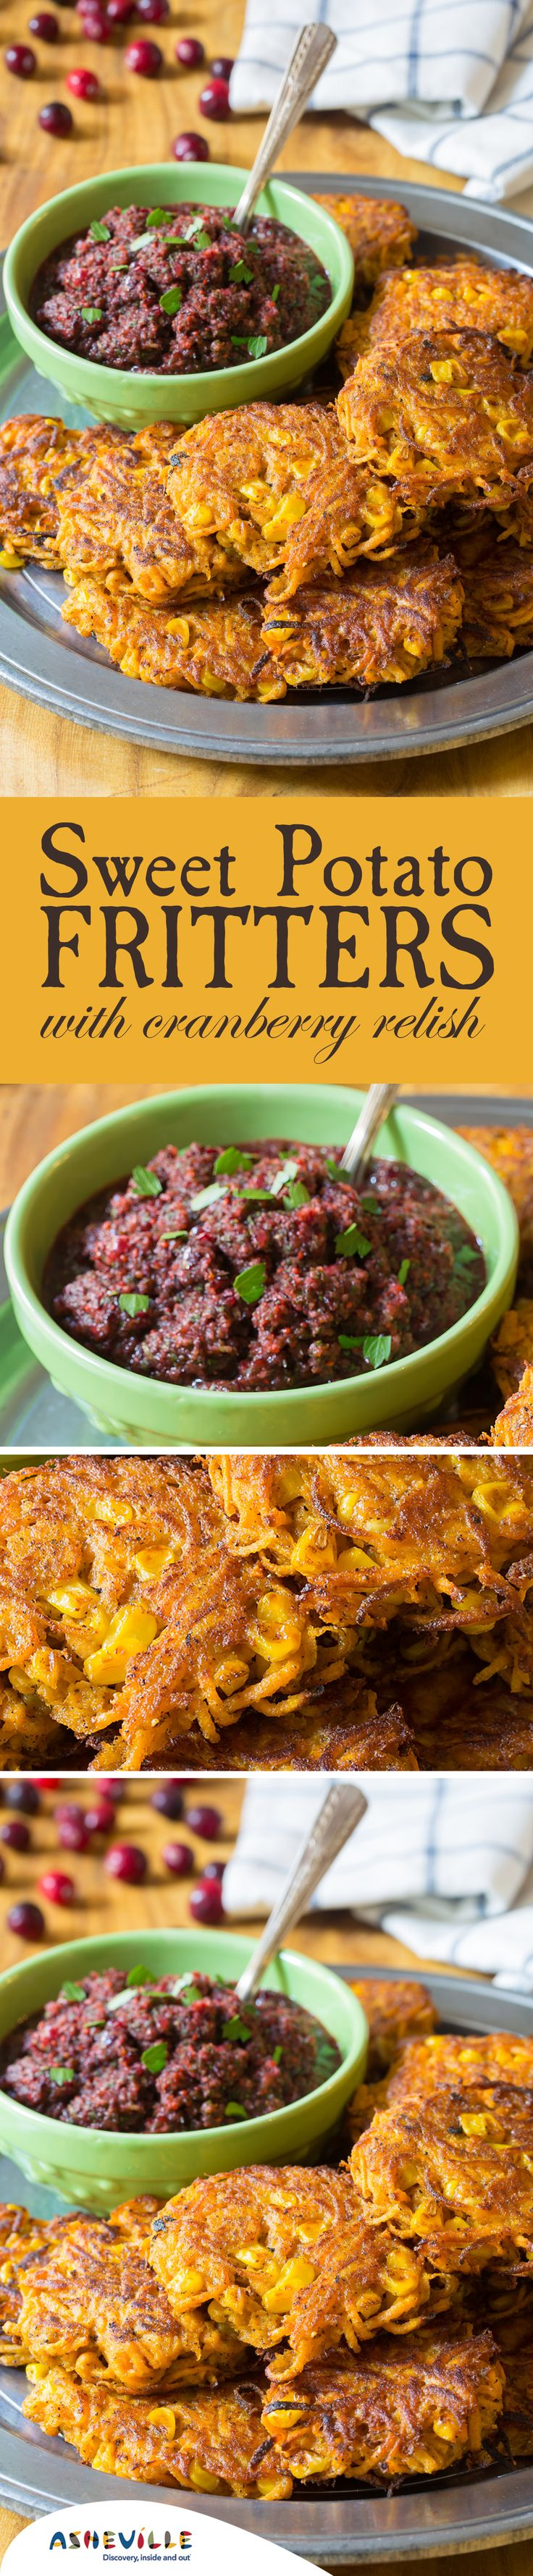 Sweet Potato Fritters with Cranberry Relish Recipe. These quick fritters have farm-fresh flavor and a bit of spice and are great finger food for your next party.